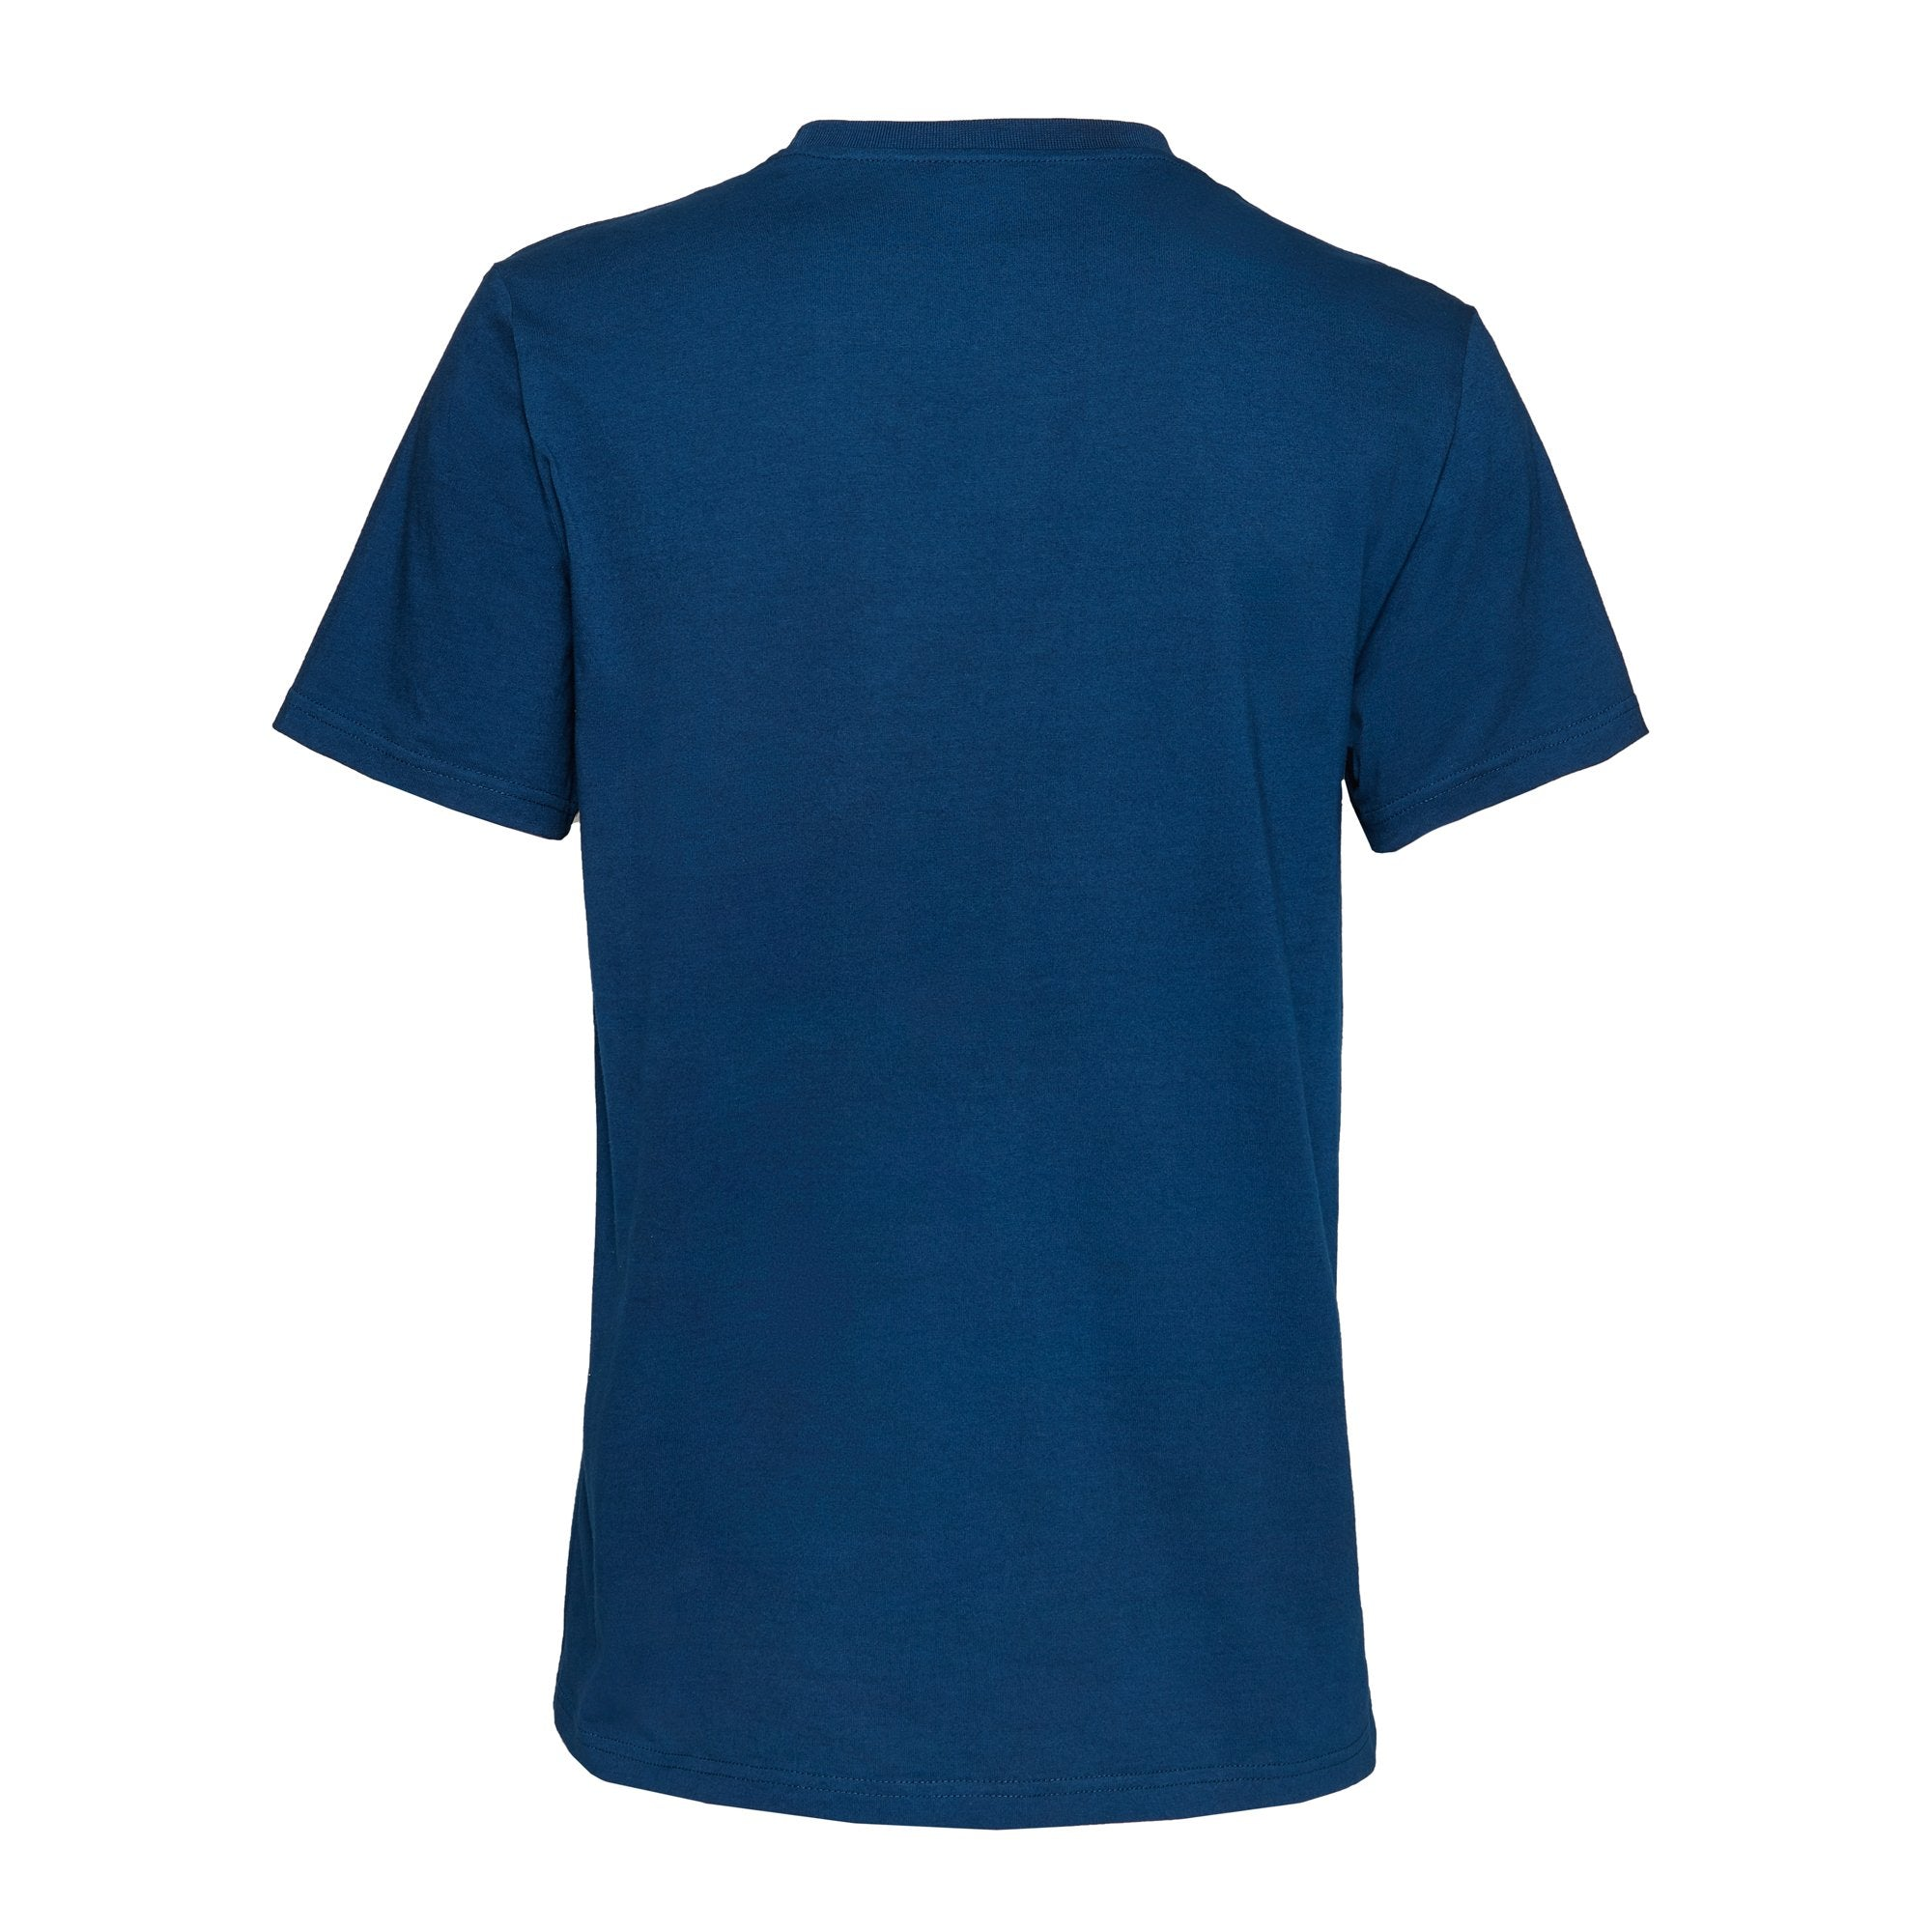 Marina Blue Graphic Organic Cotton Tee